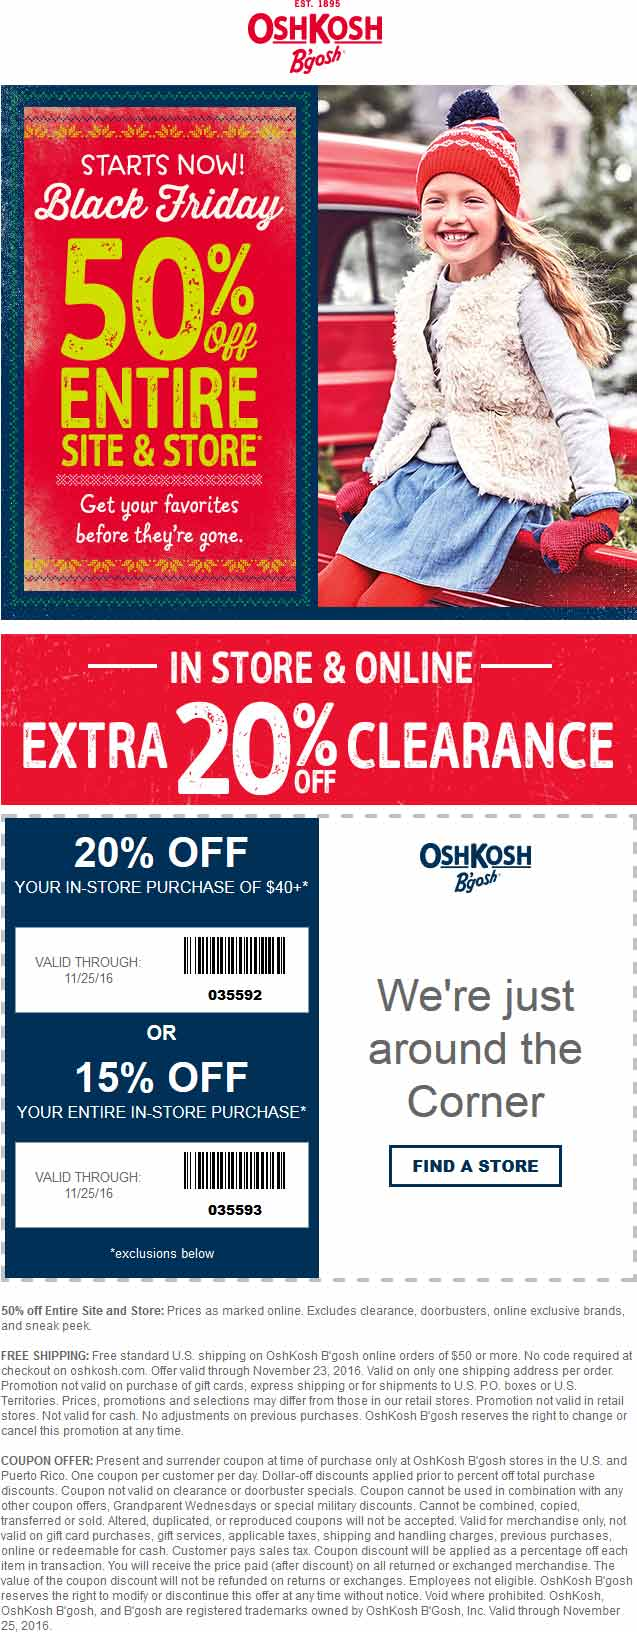 OshKoshBgosh.com Promo Coupon 50% off everything + another 15-20% at OshKosh Bgosh, ditto online